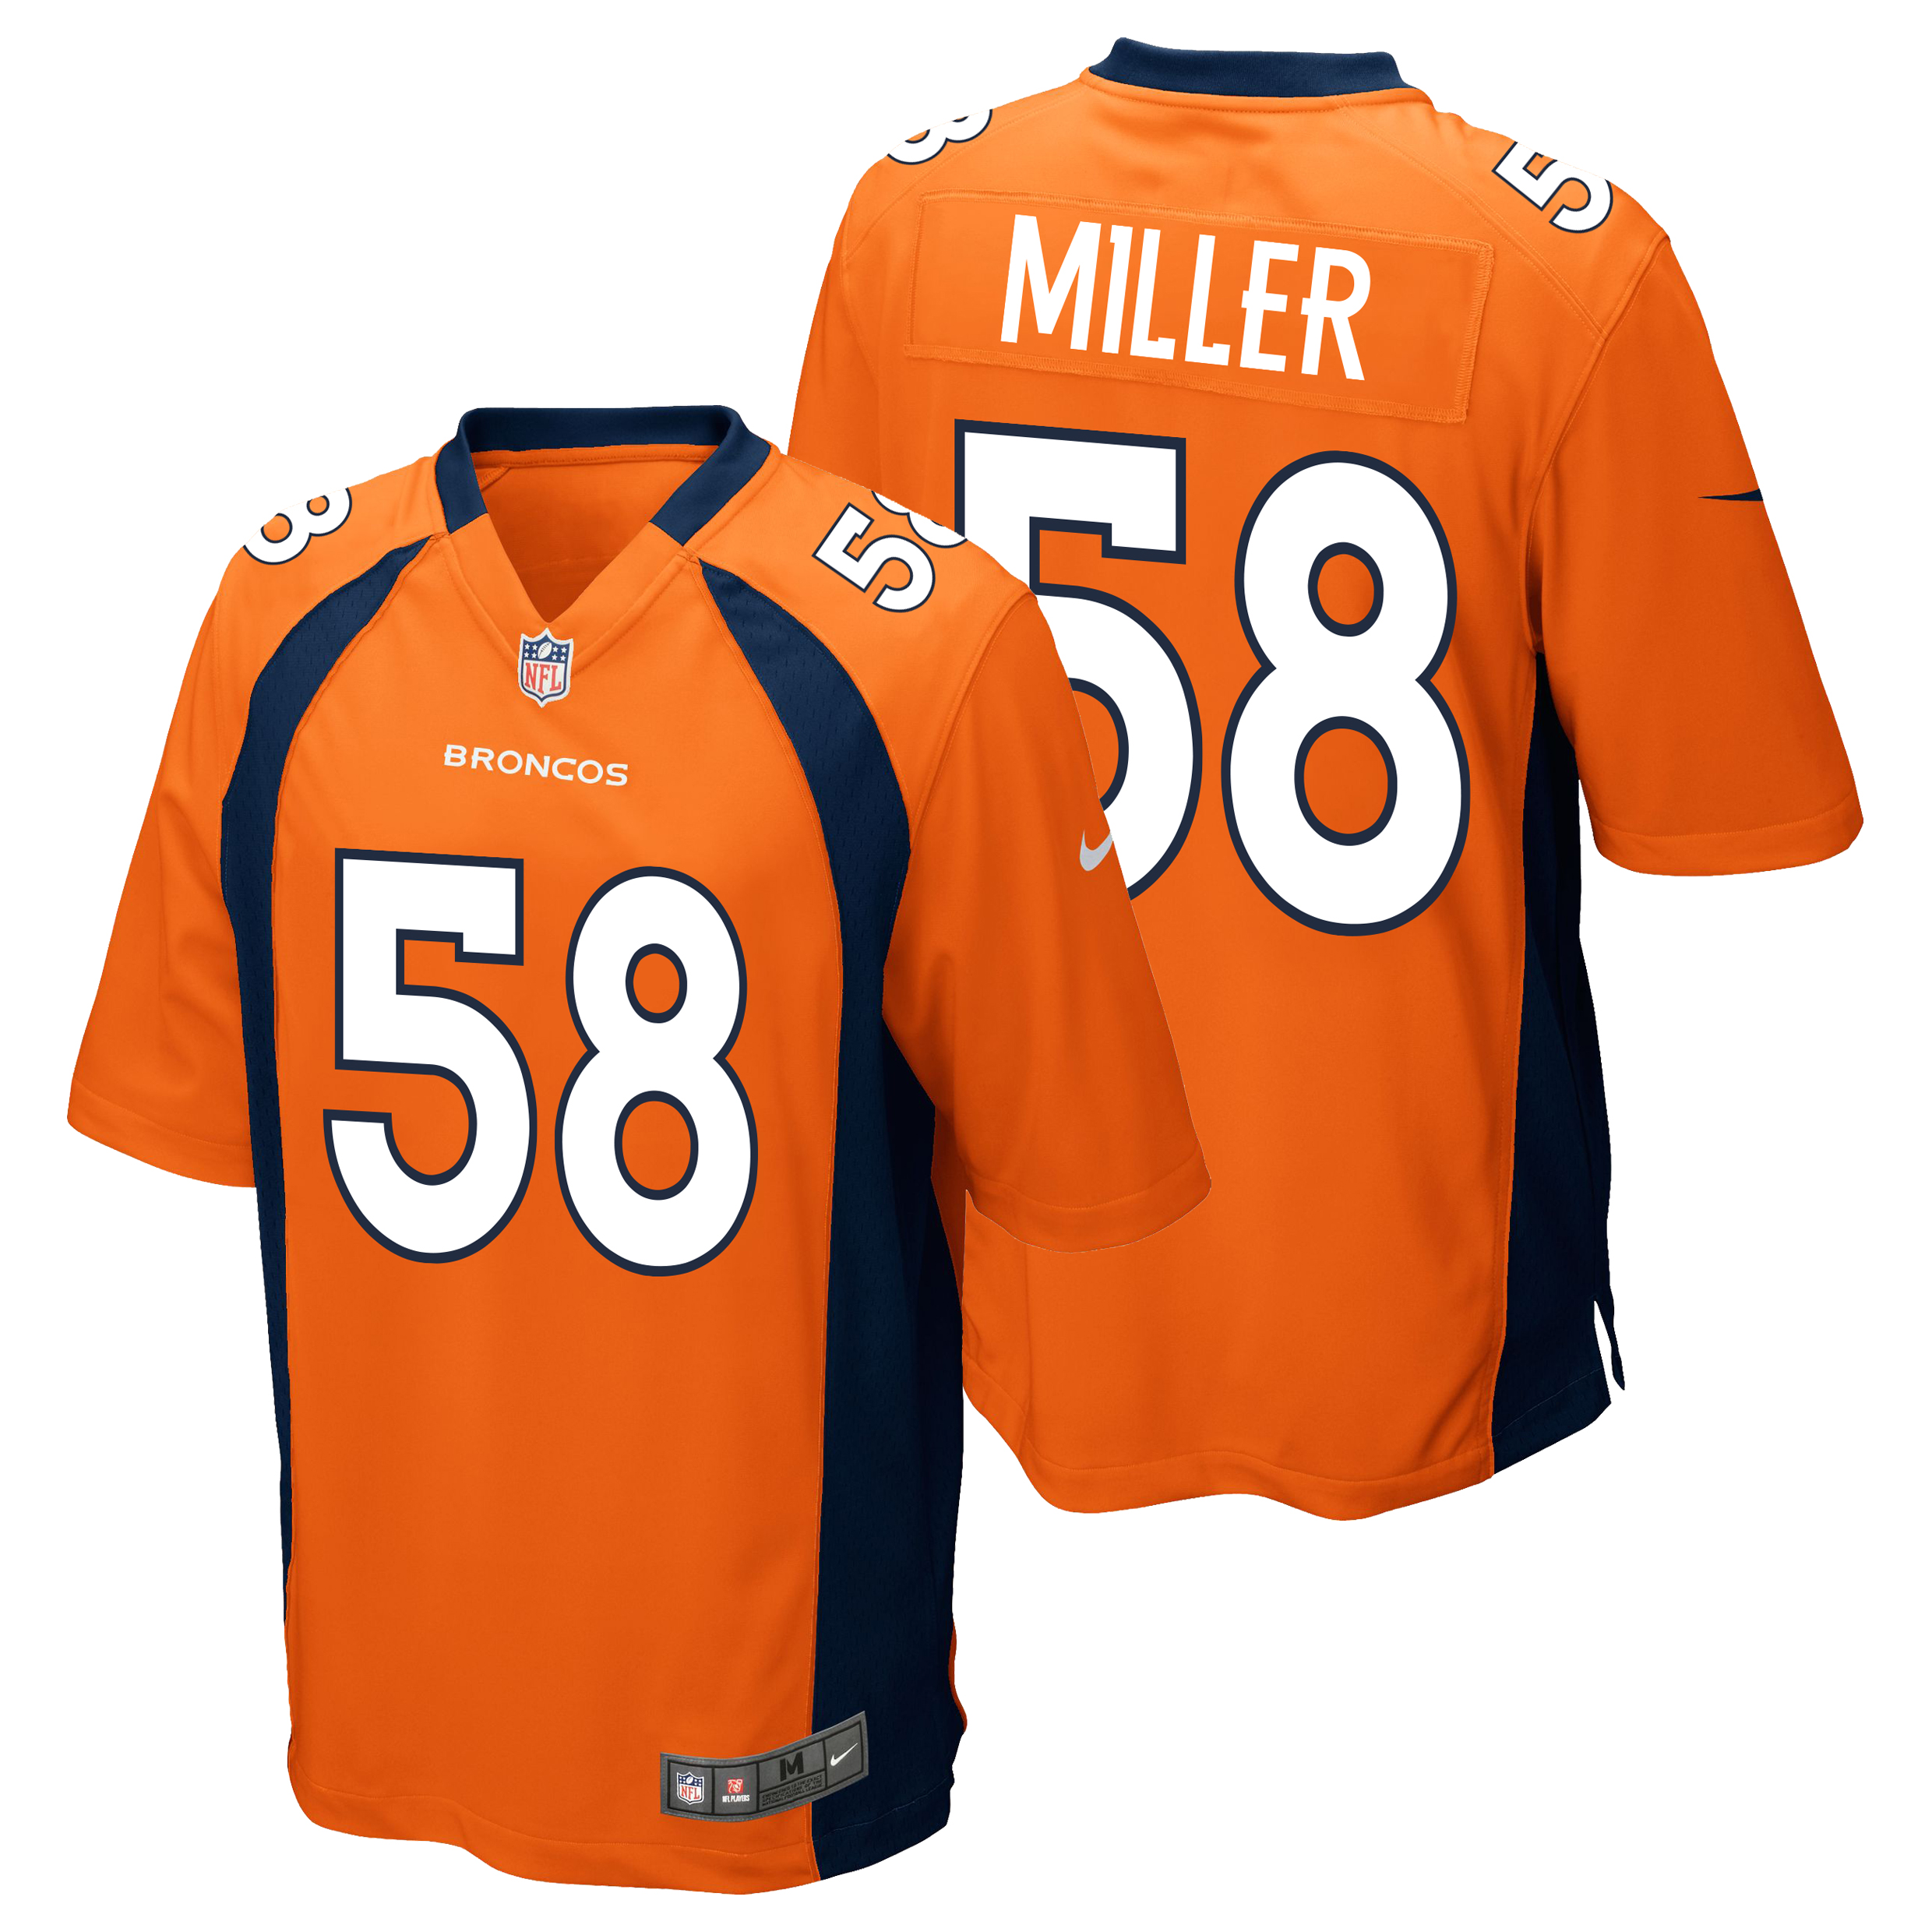 Denver Broncos Home Game Jersey - Von Miller